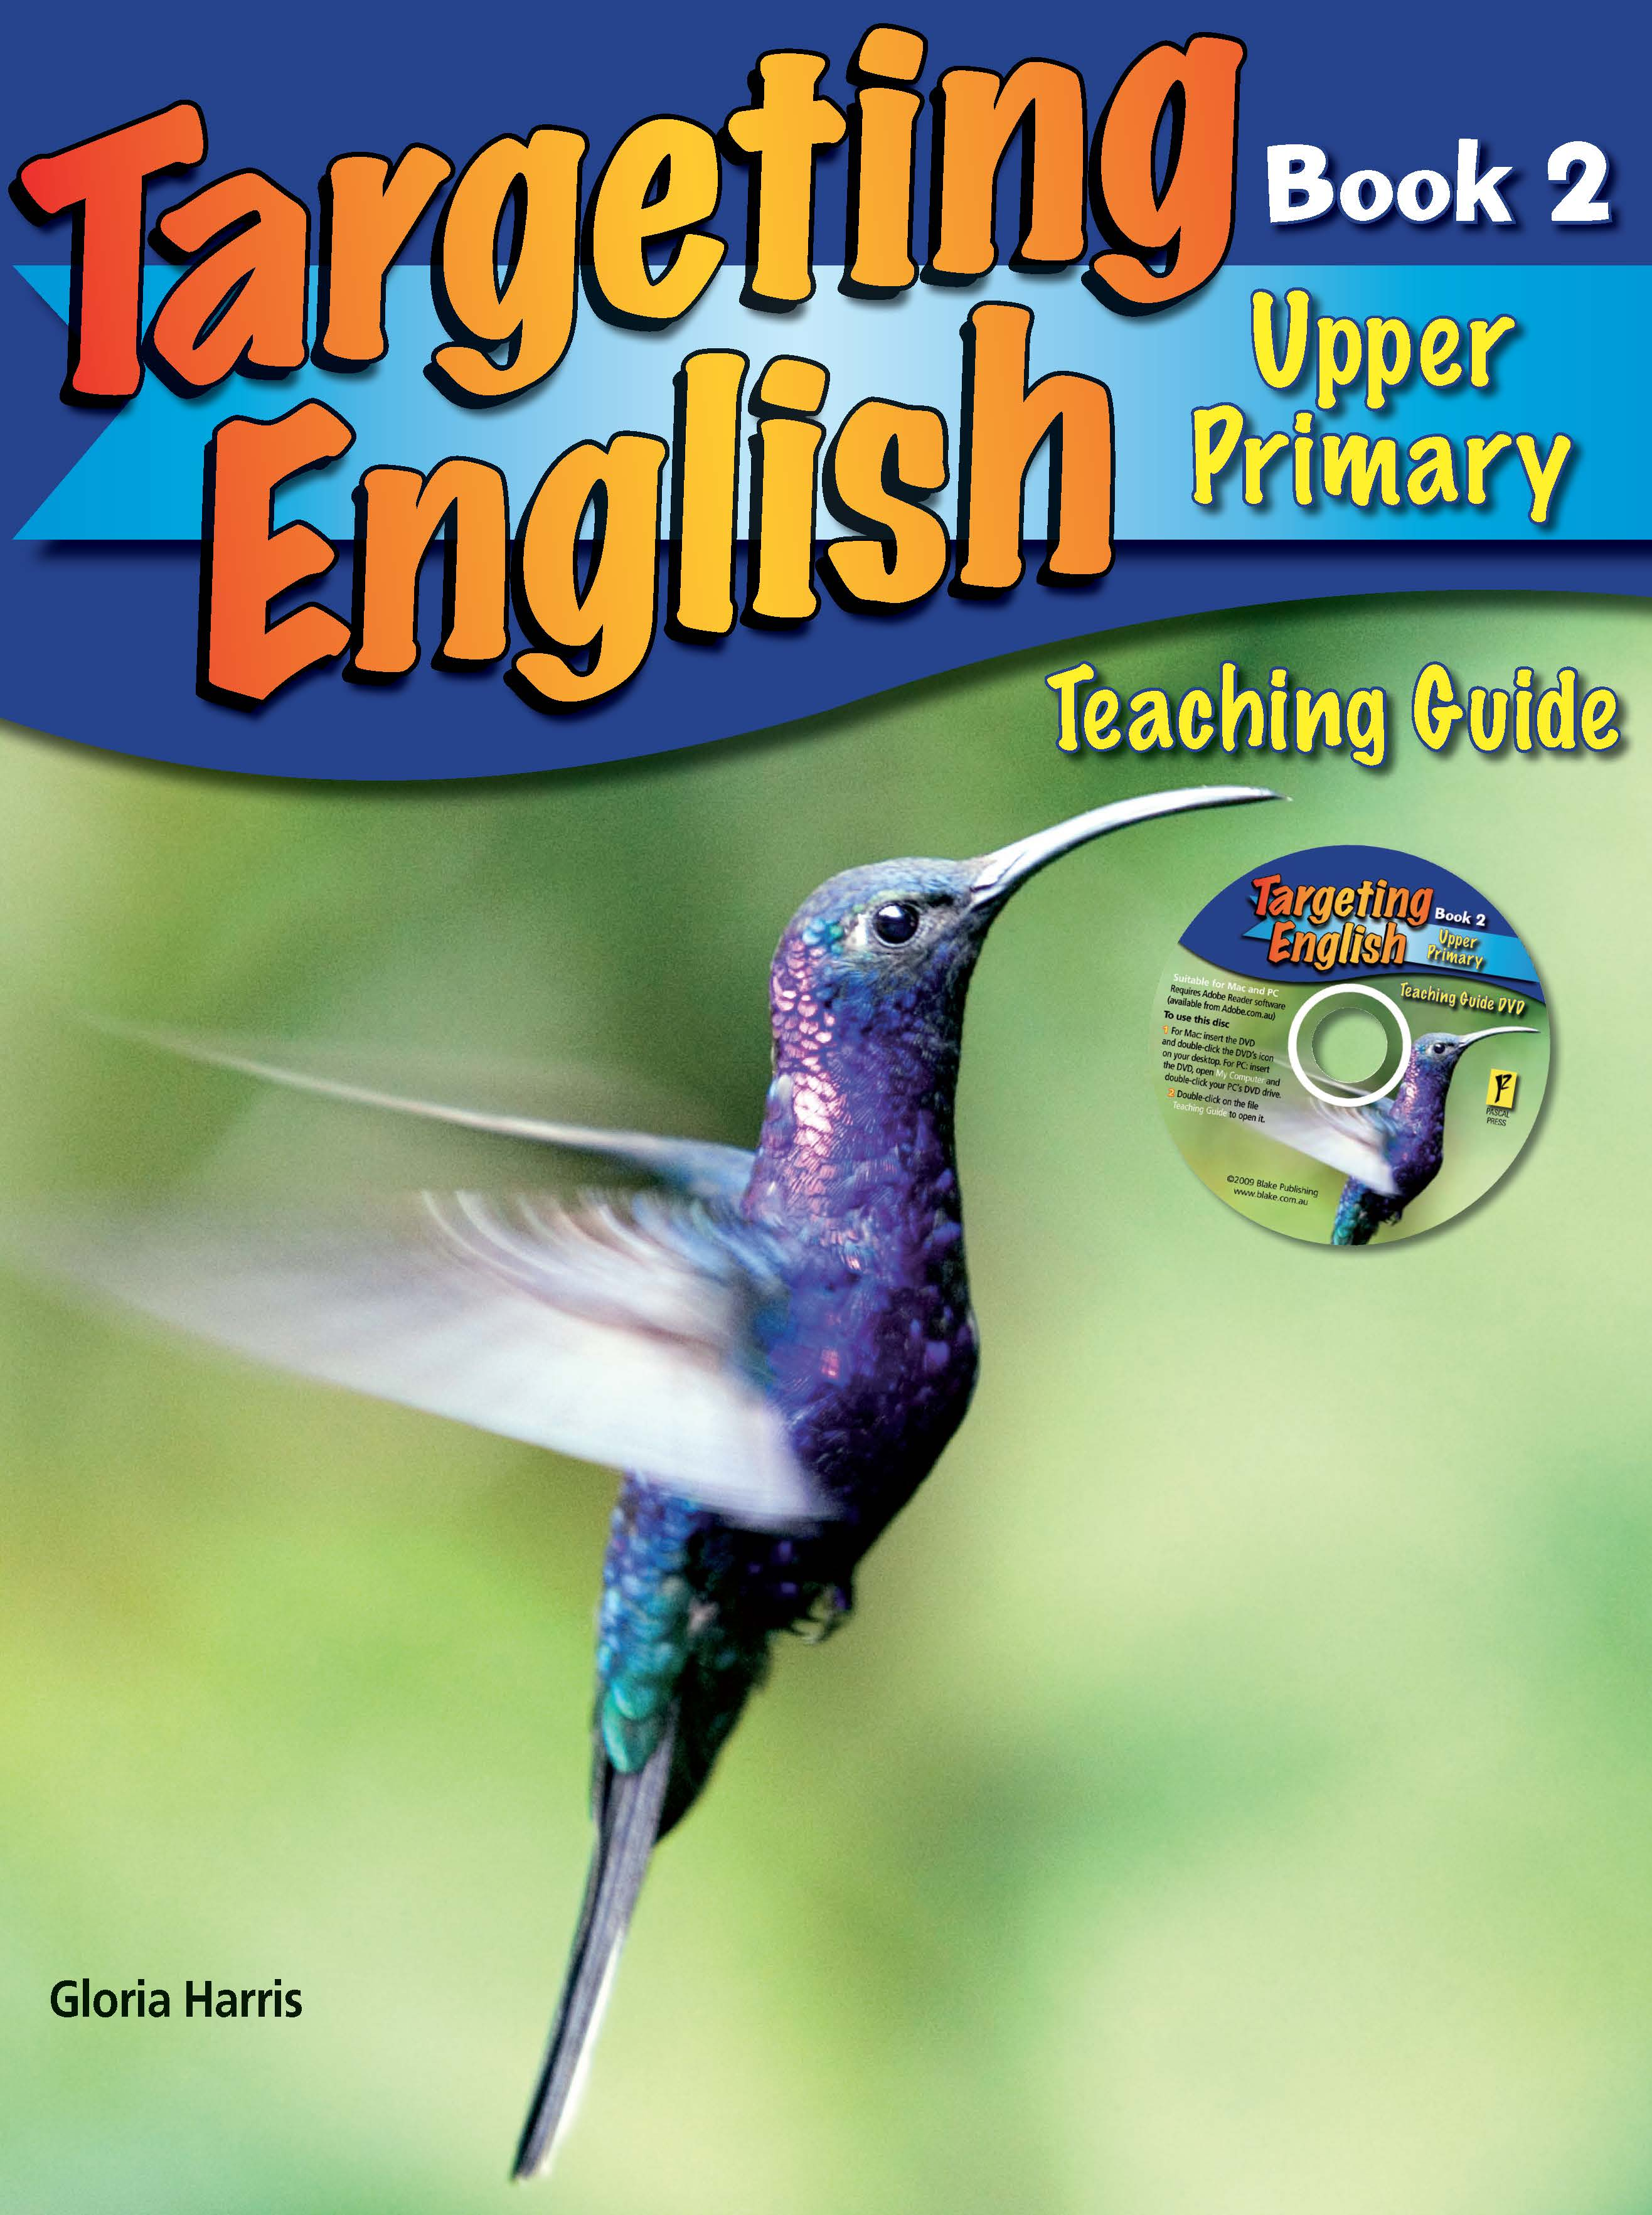 Targeting English Teaching Guide Upper Primary Book 2